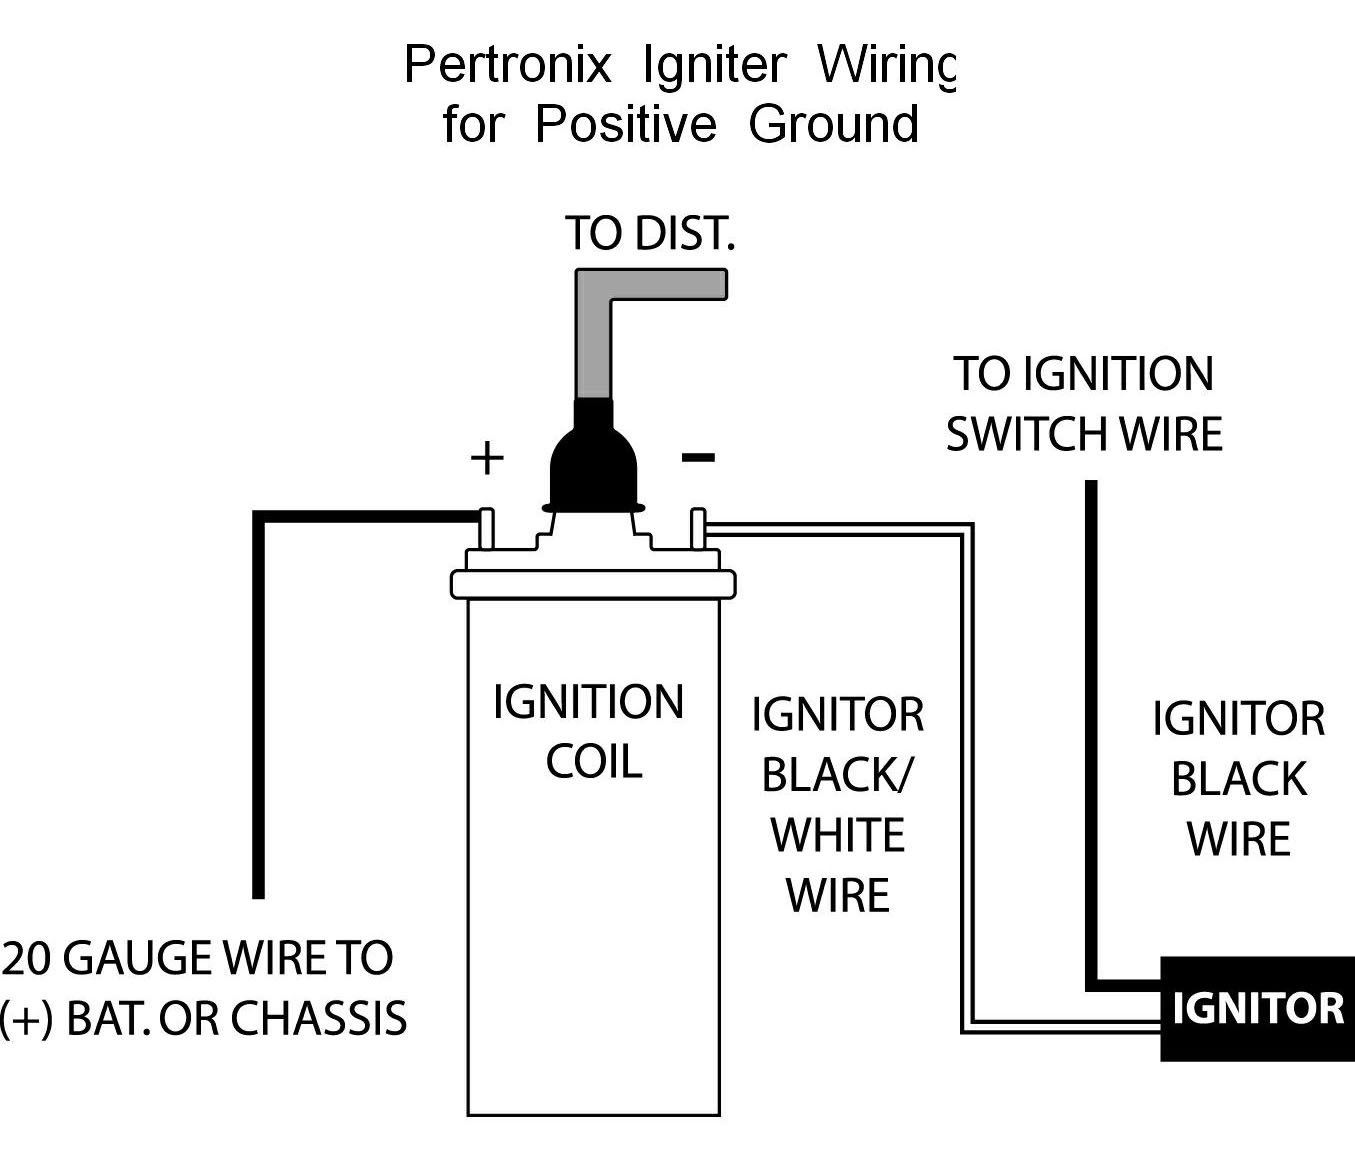 Ignition Switch Wiring 1951 Ford All Kind Of Diagrams 1964 Fuel Gauge Pertronix Positive Ground 1936 1937 Picture